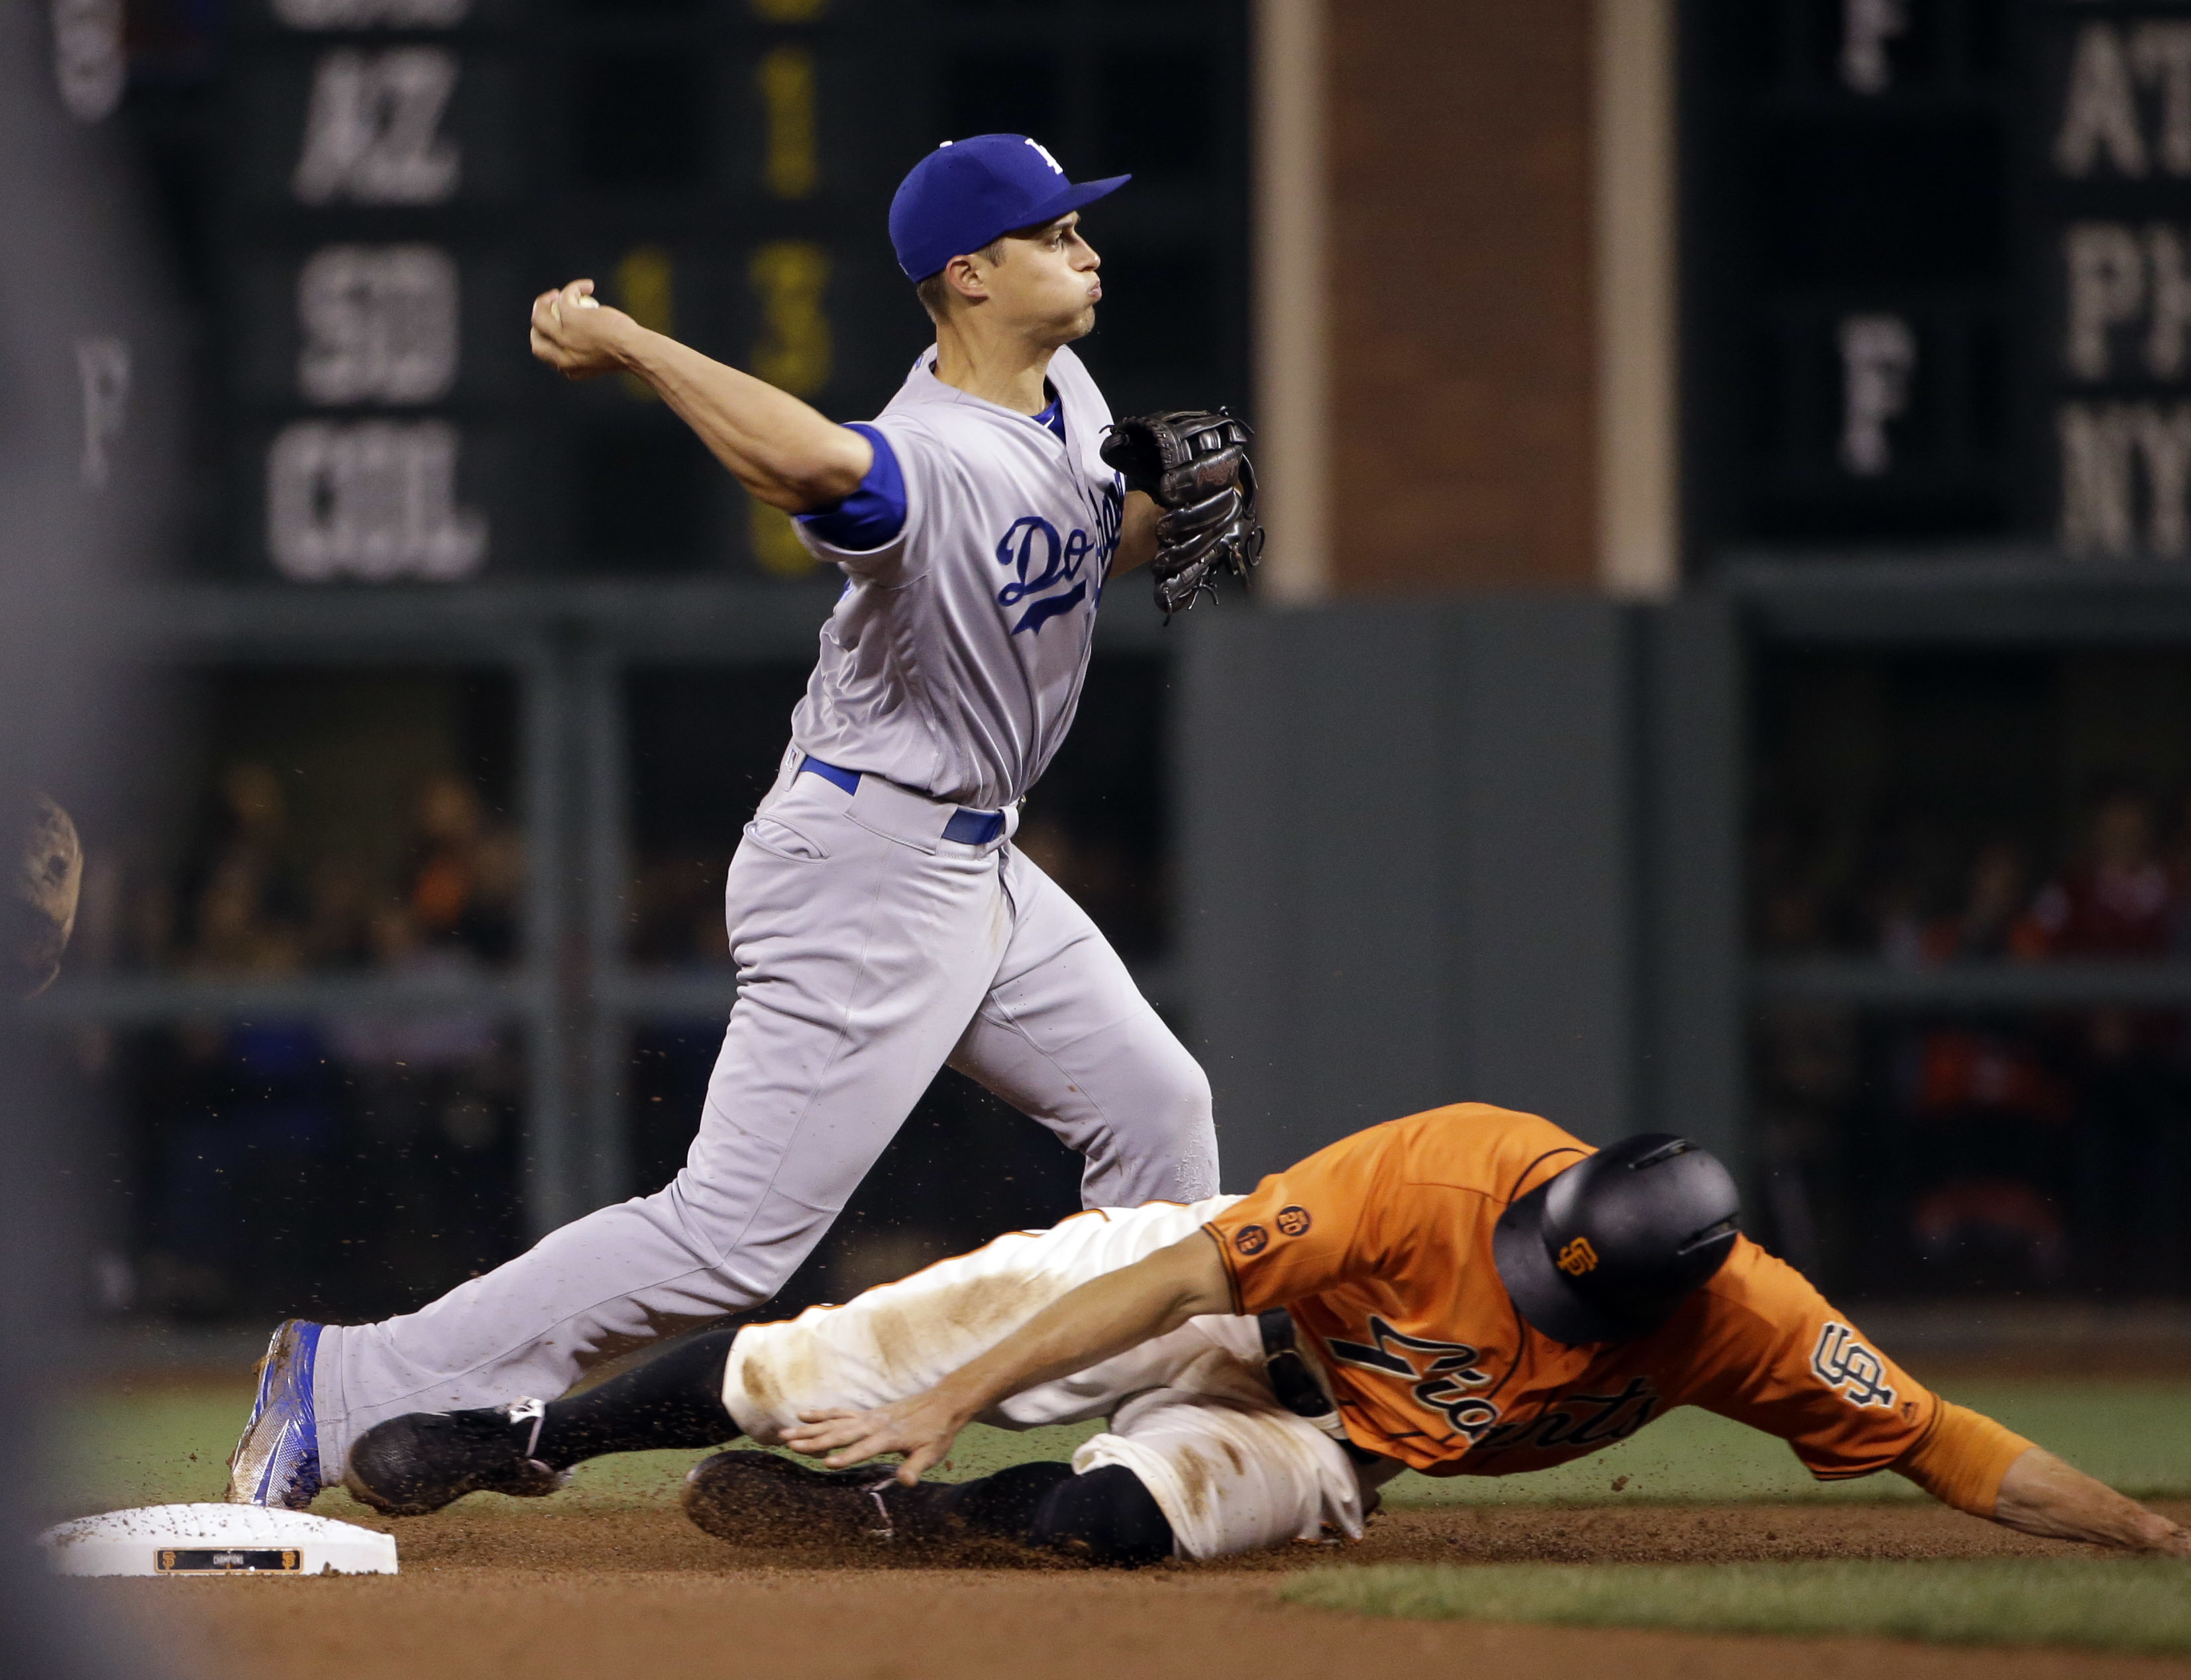 Los Angeles Dodgers shortstop Corey Seager throws to first after forcing out San Francisco Giants' Hunter Pence at second base on a ground ball by Brandon Belt during the seventh inning of a baseball game Friday, April 8, 2016, in San Francisco. Belt was